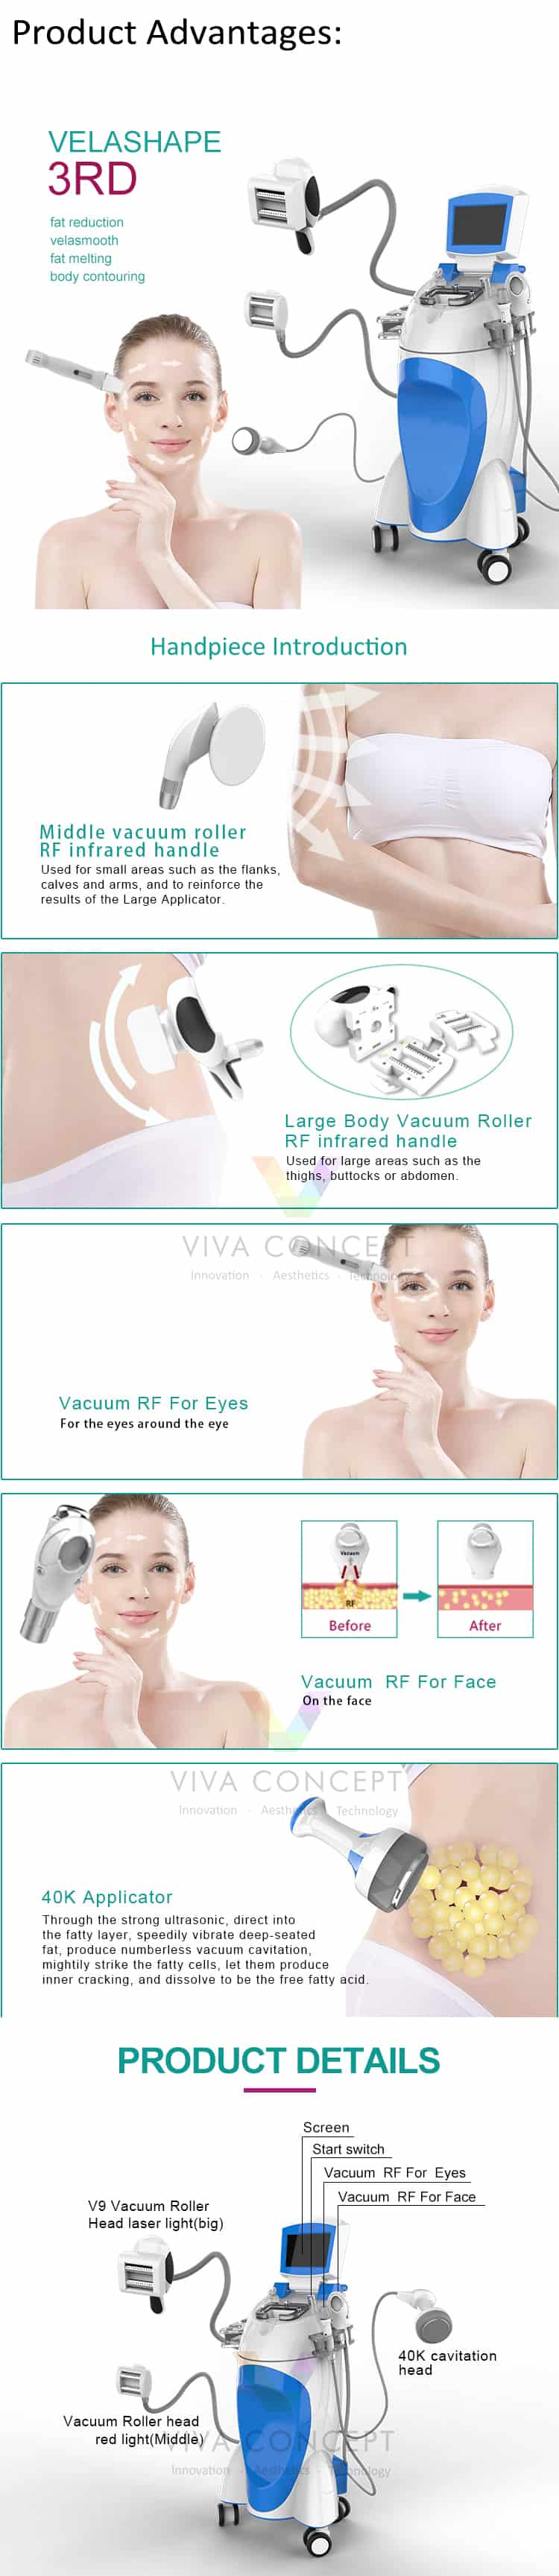 Velashape Machine VA-602 advantages